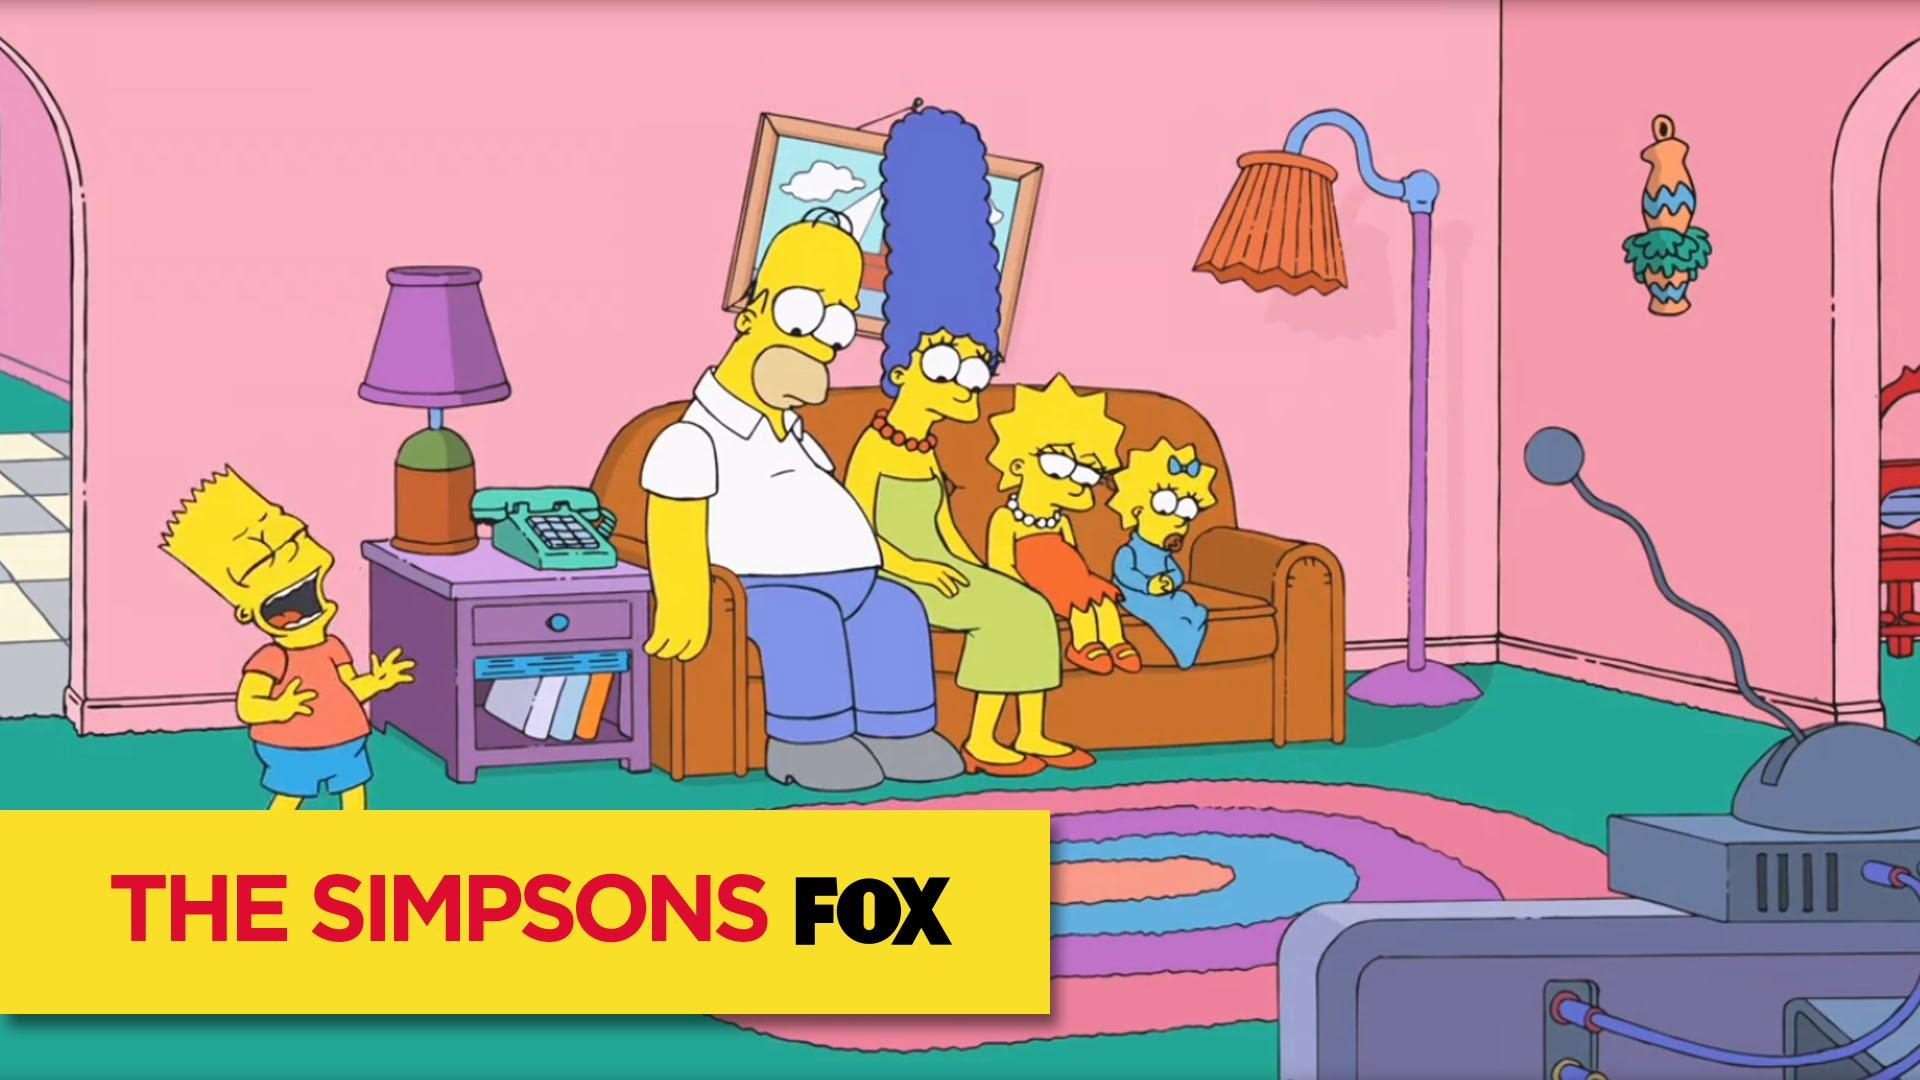 an introduction to the history of the simpsons The simpsons as reflection of our disintegrating society in recent years, a certain animated sitcom has caught the public's attention, evoking reactions that are both favorable and unfavorable, but hardly ever apathetic.